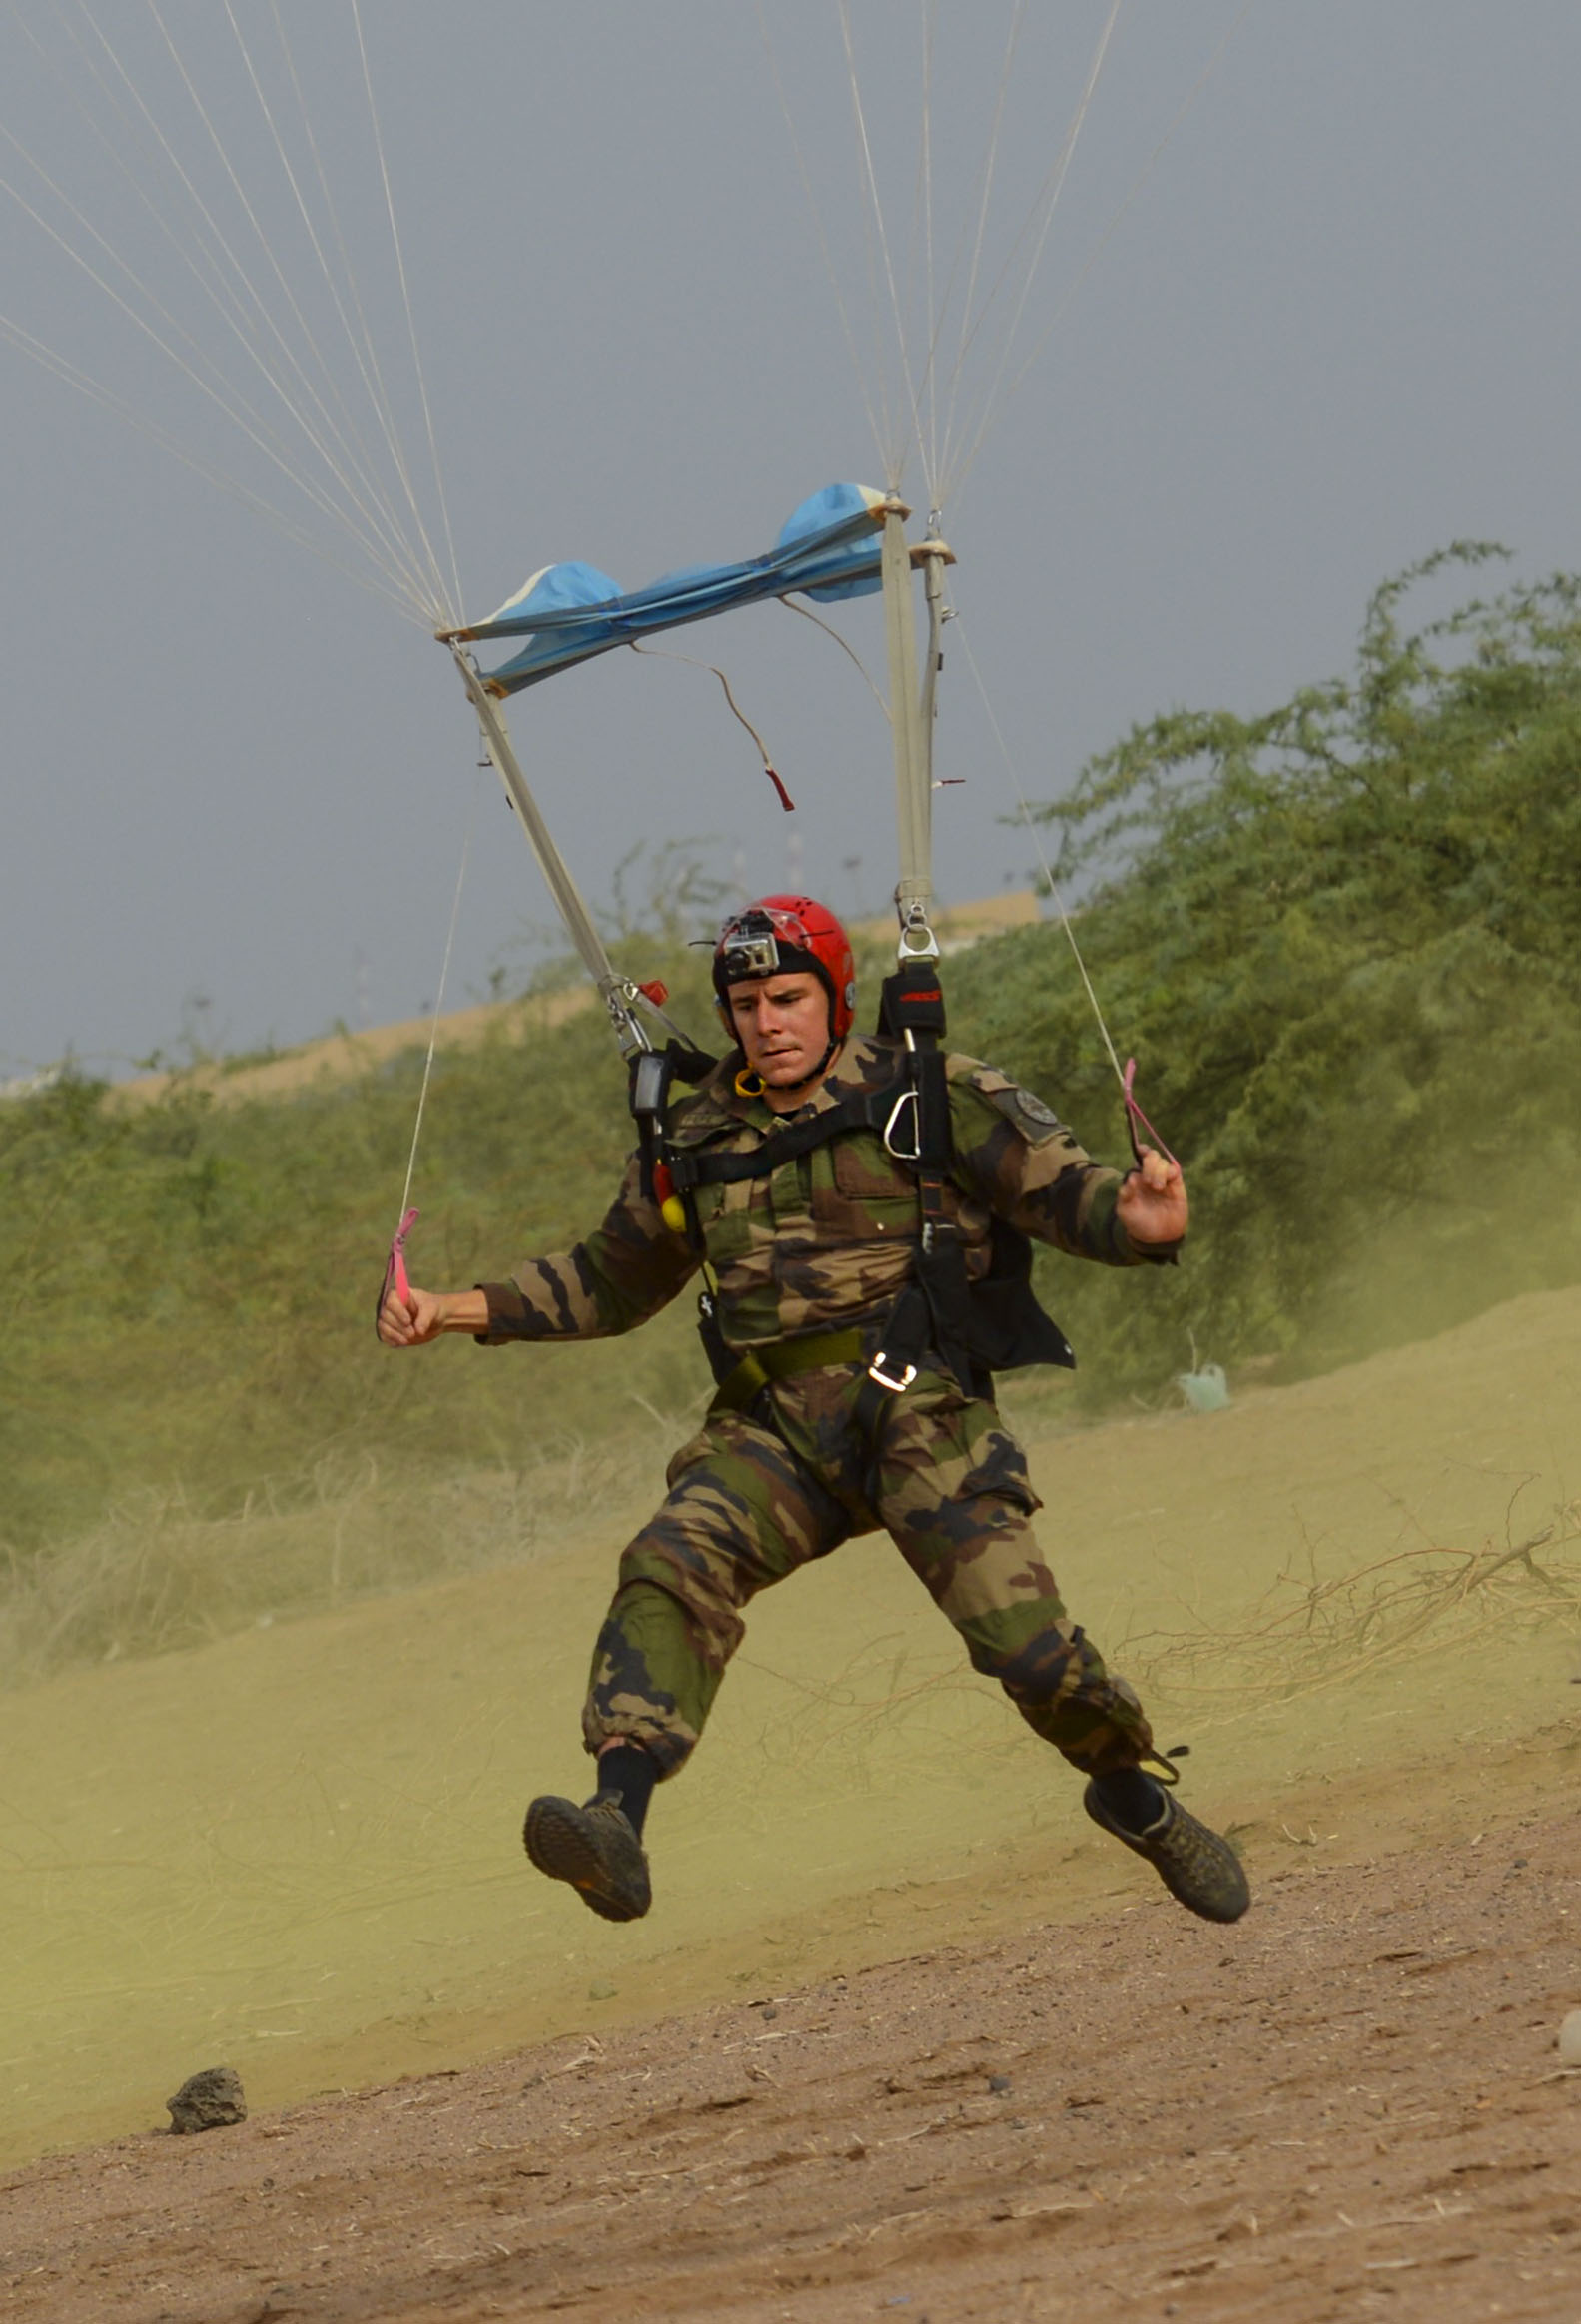 A French airborne soldier lands safely on the ground during a high altitude low opening jump in celebration of St. Michel's Day in Djibouti, Sept. 29, 2016. The celebration was in honor of St. Michel, the patron saint of paratroopers, and included a celebratory mass and American jumpers being awarded French jump wings. (U.S. Air Force photo by Staff Sgt. Benjamin Raughton)